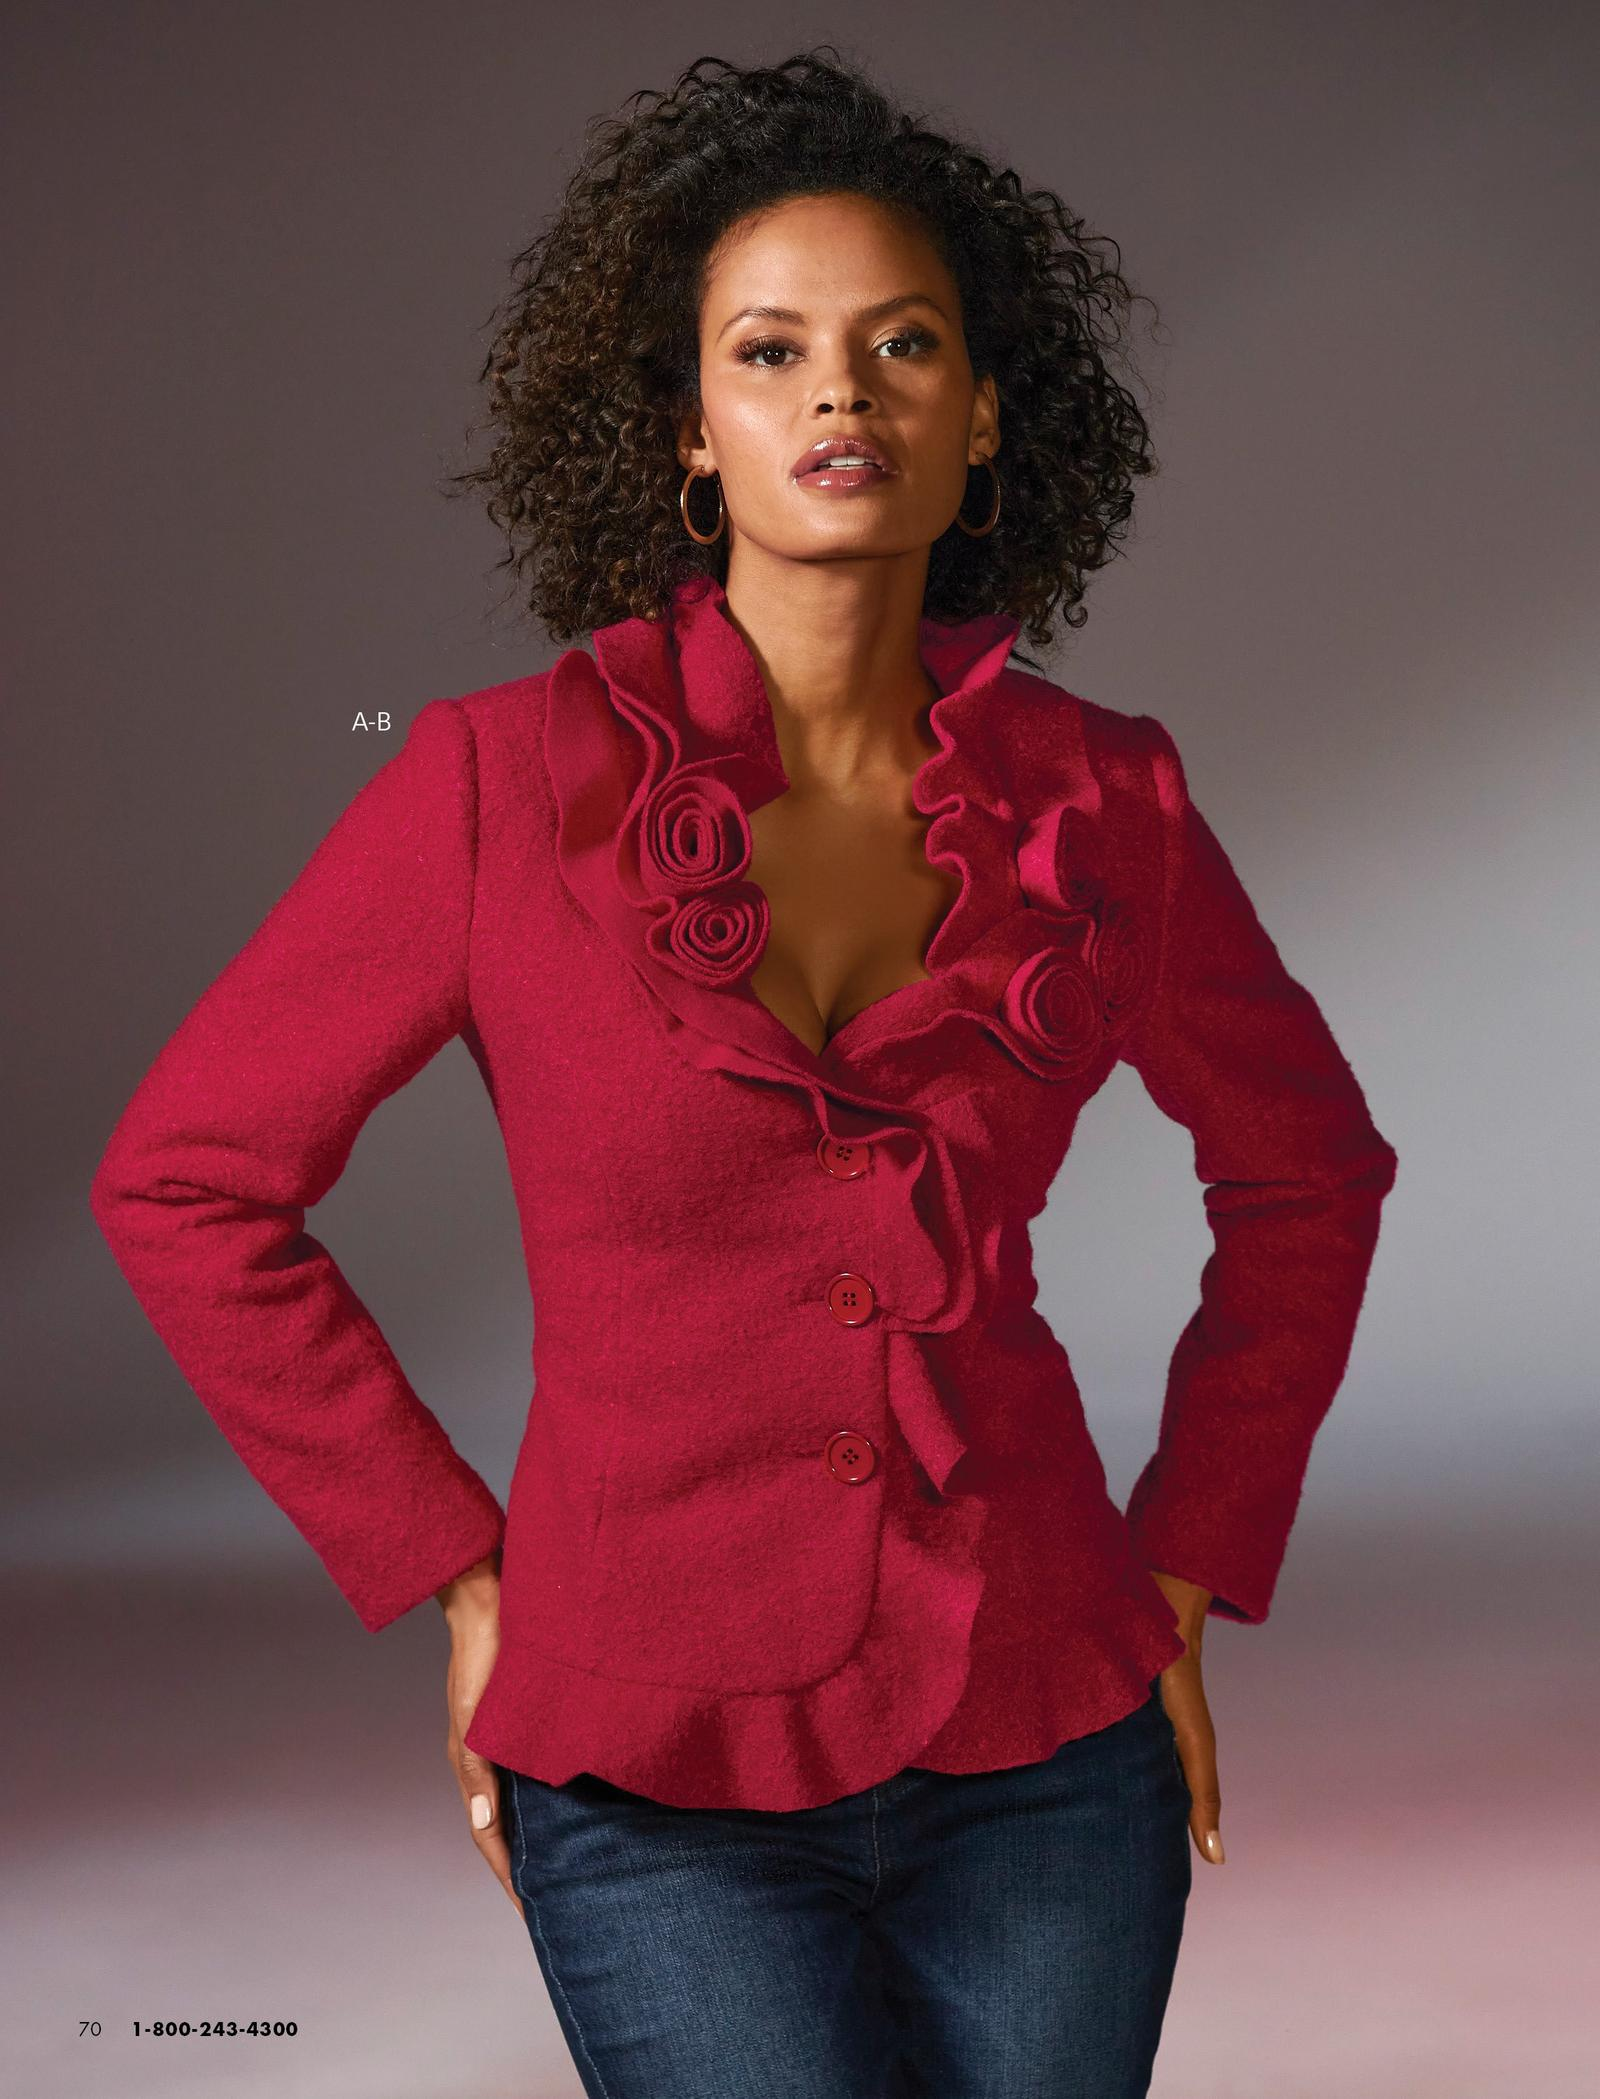 model wearing a red rosette & ruffle jacket and jeans.